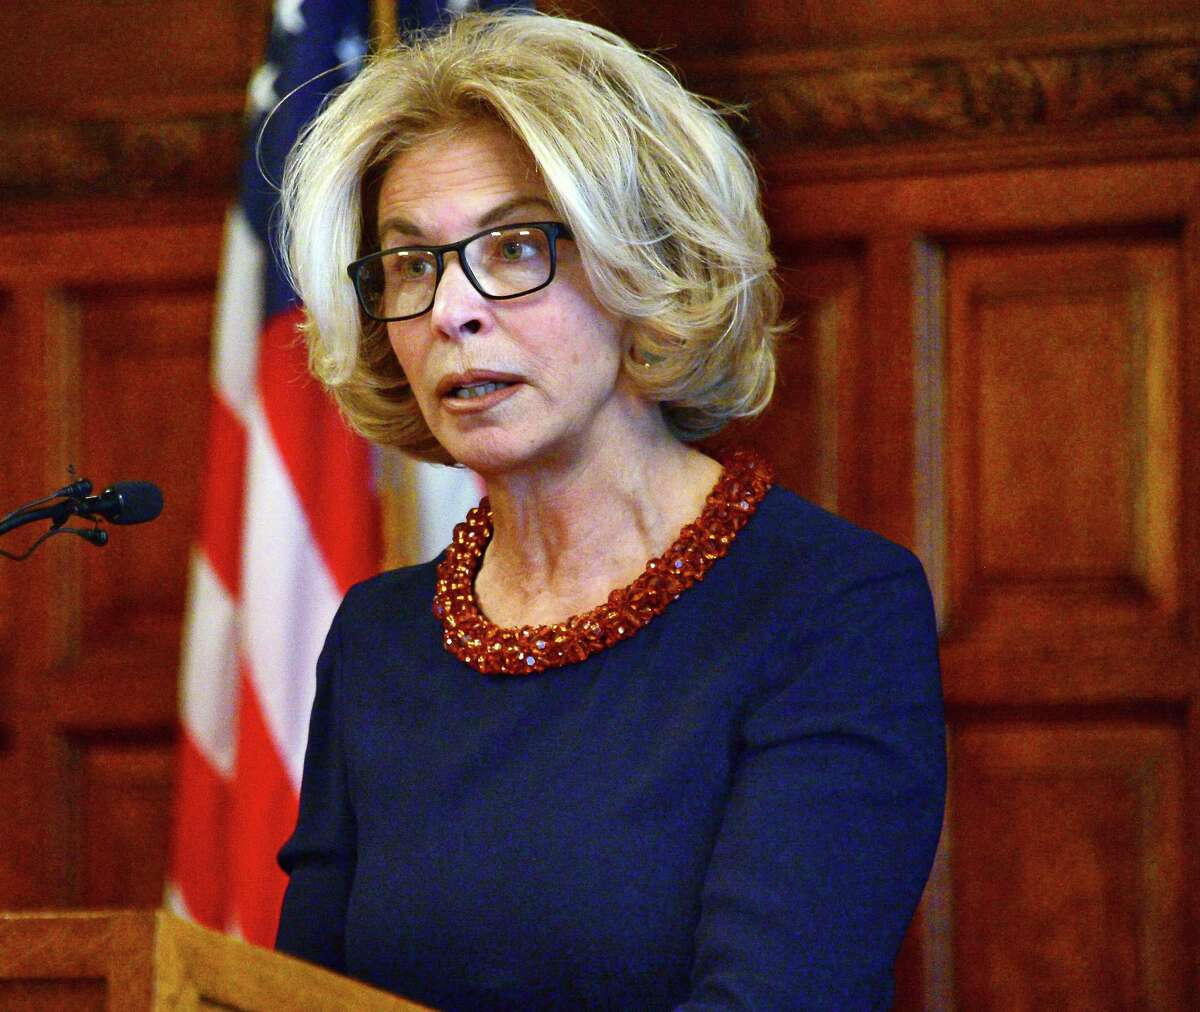 Chief Judge Janet DiFiore delivers her second annual State of Our Judiciary Address in the Court of Appeals Hall Tuesday Feb. 6, 2018 in Albany, NY. (John Carl D'Annibale/Times Union)